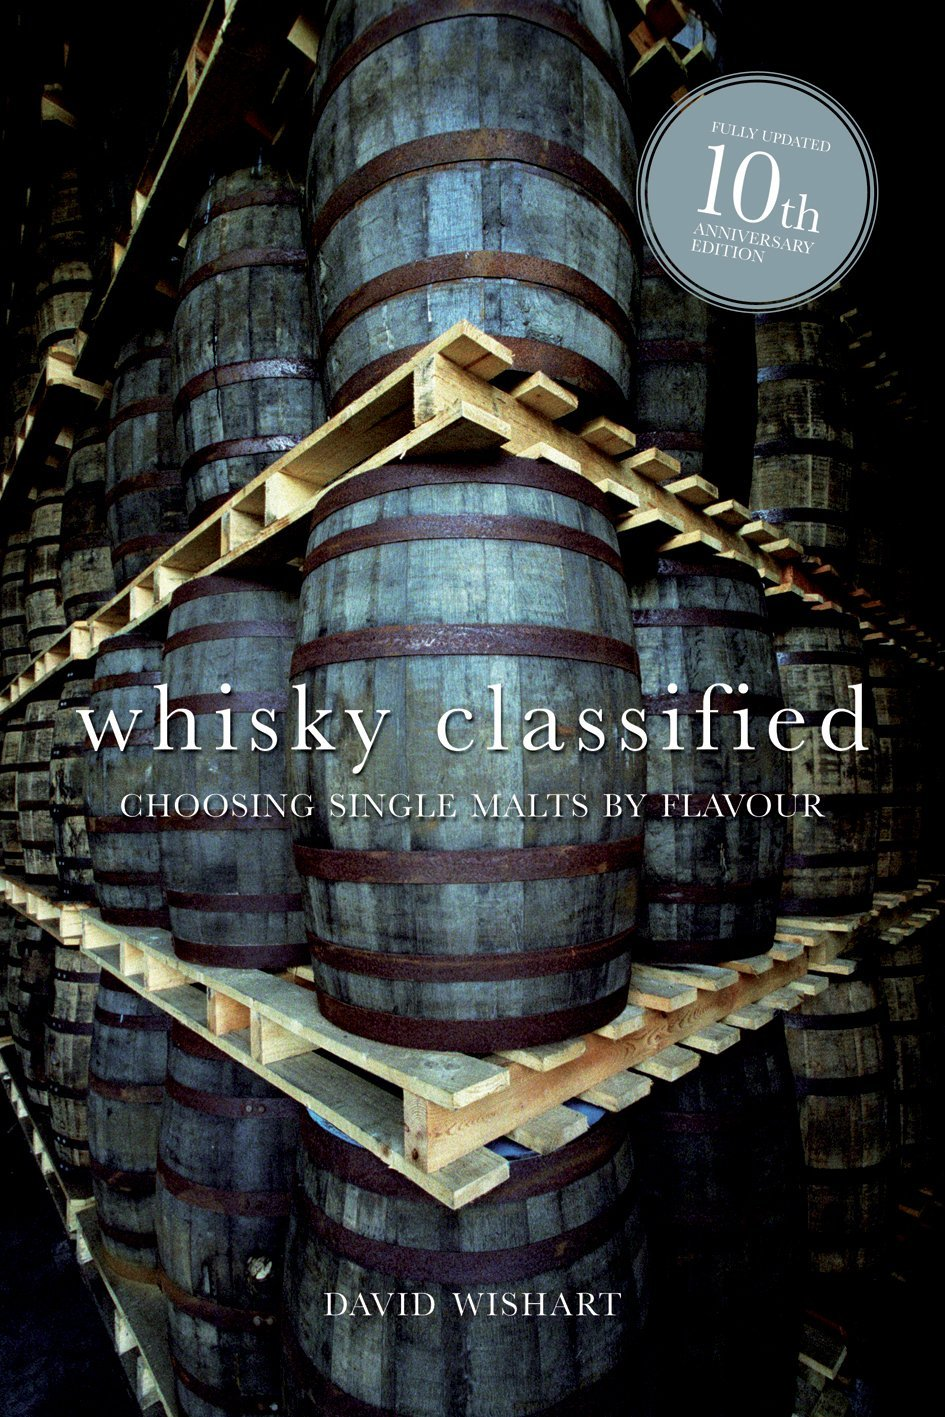 Whisky Classified: Choosing Single Malts by Flavour